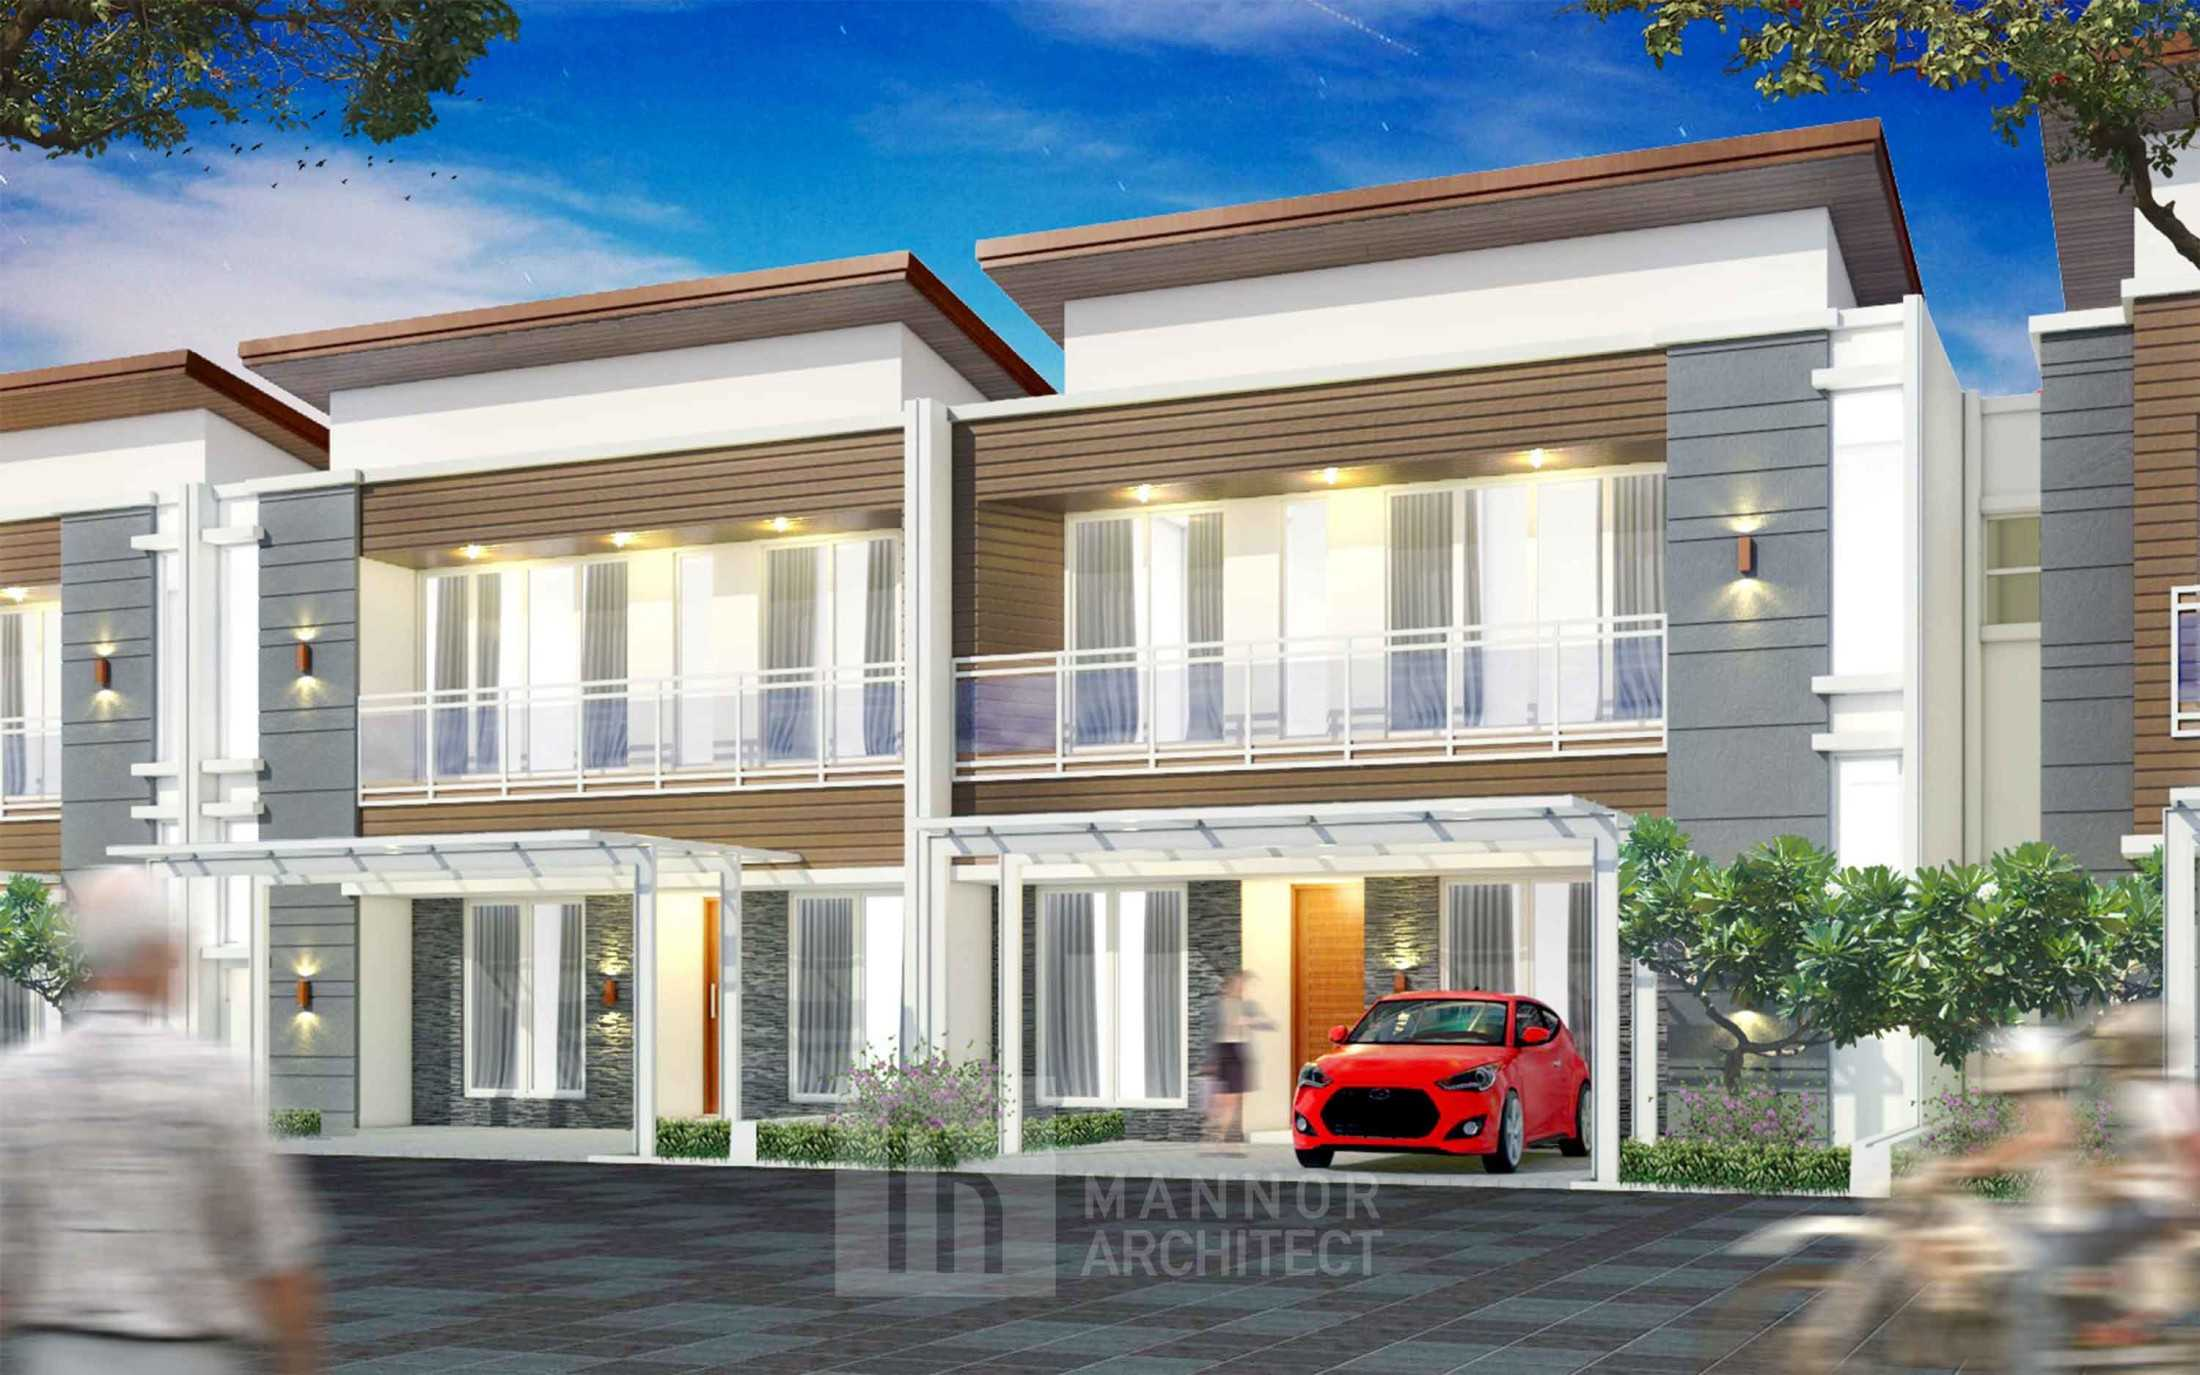 Mannor Architect Green Hills Project Padang - Sumatera Barat Padang, Kota Padang, Sumatera Barat, Indonesia Padang, Kota Padang, Sumatera Barat, Indonesia Mannor-Architect-Green-Hills-Project-Padang-Sumatera-Barat  57431